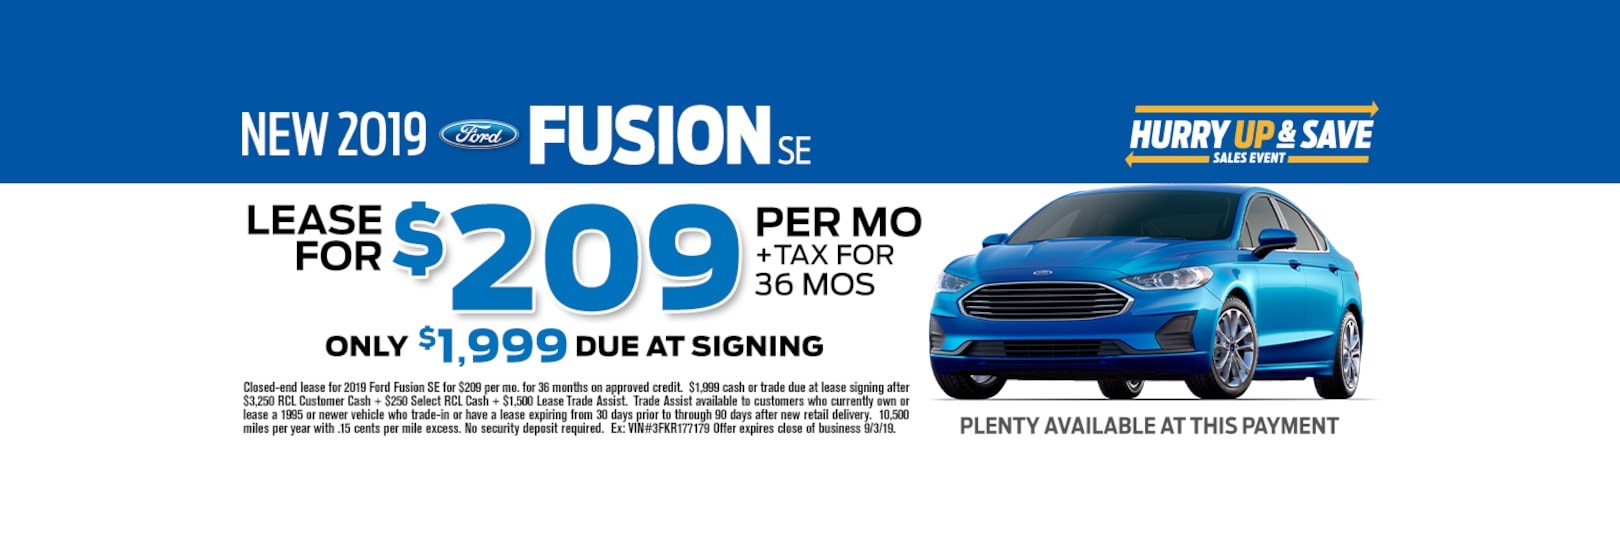 Palm Springs Ford >> New Ford Used Car Dealer In Cathedral City Ca Palm Springs Ford